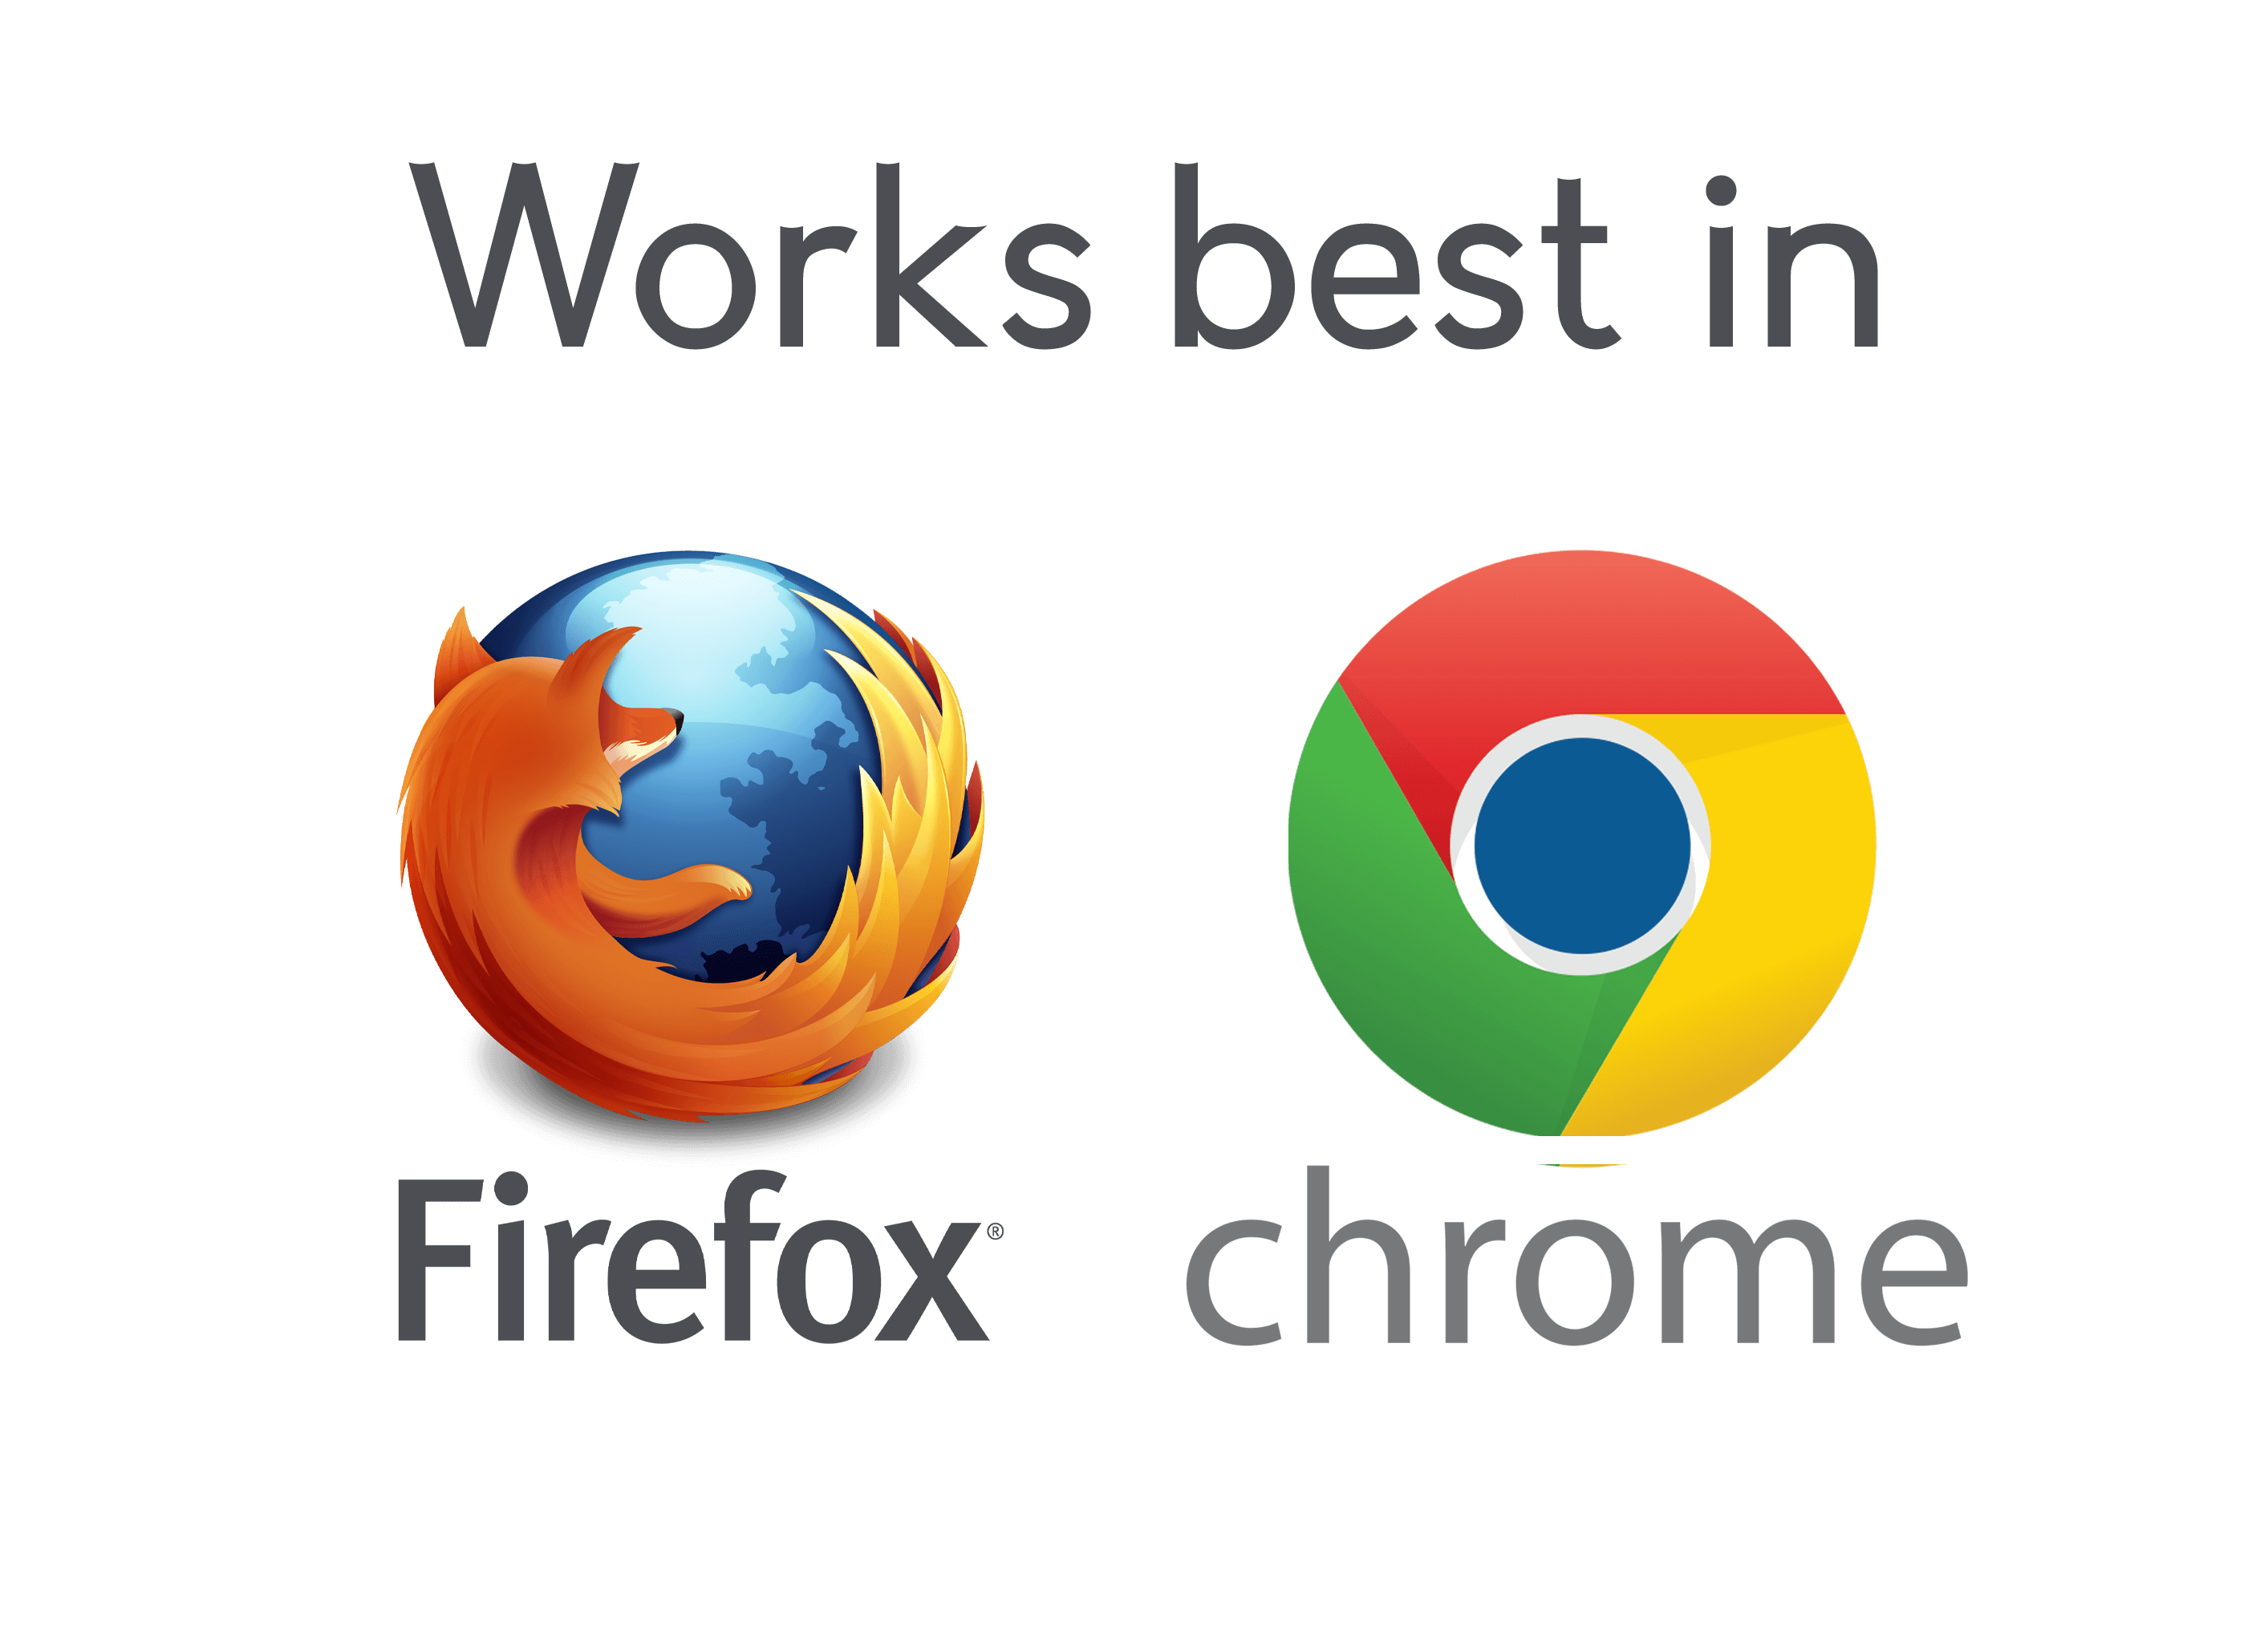 This site works best with Mozilla Firefox or Google Chrome browers